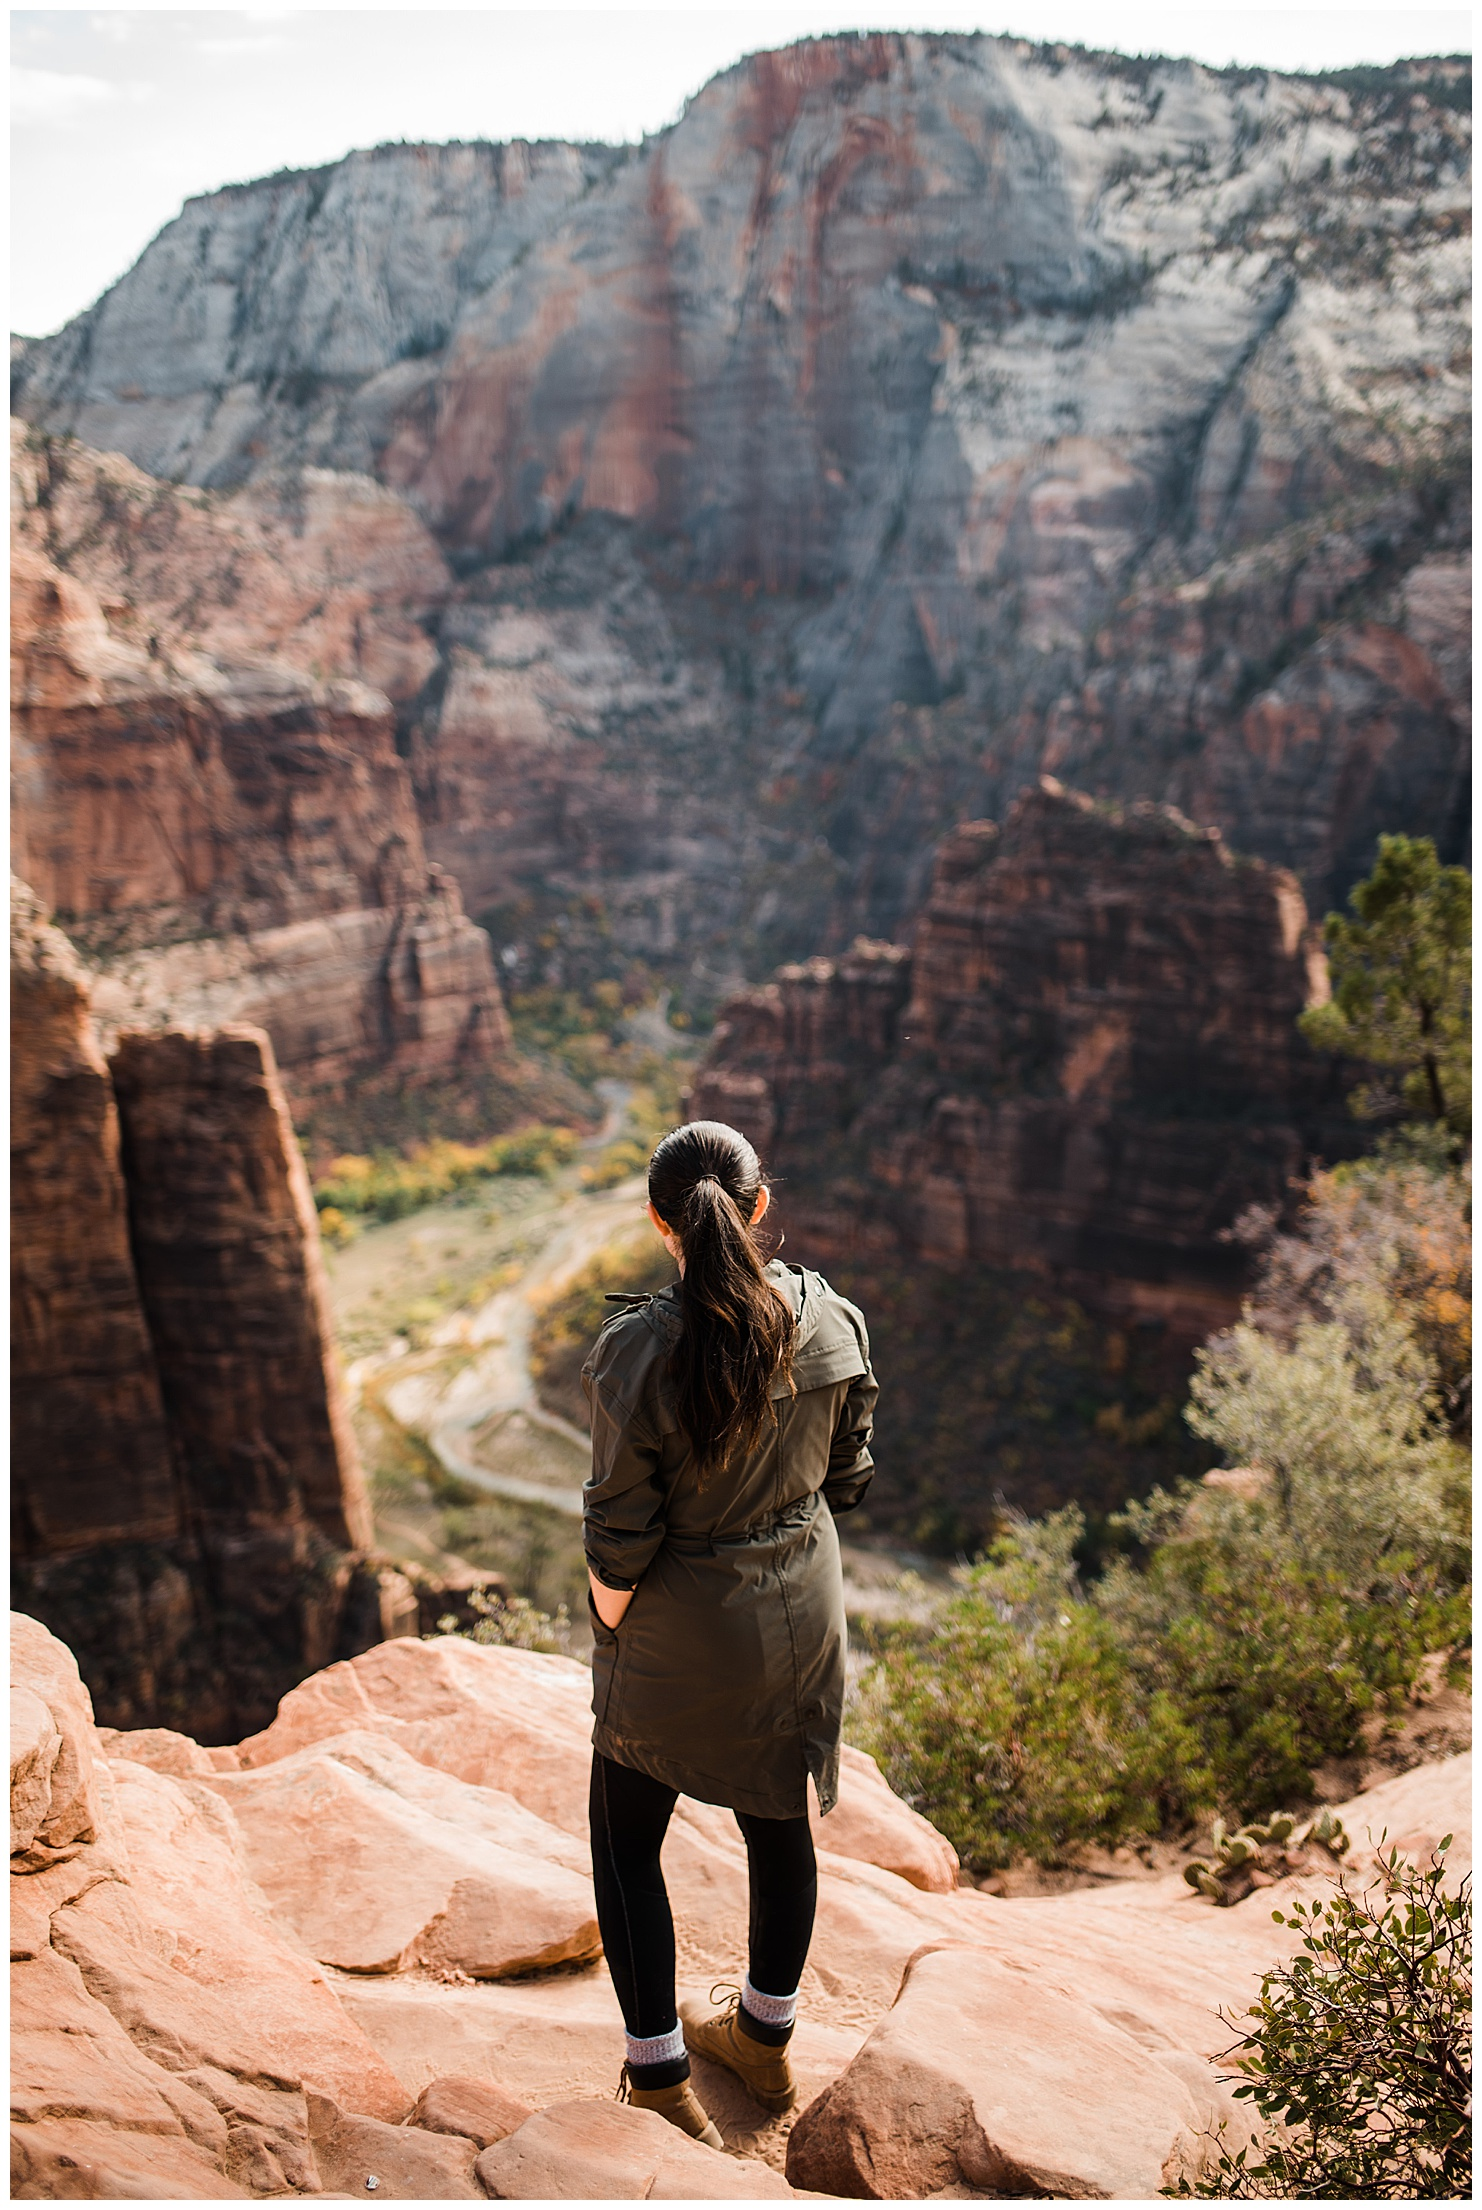 Picture of Angel's Landing, Zion National Park by Forthright Photo, Southwest Elopement Photographers and traveling wedding photographers